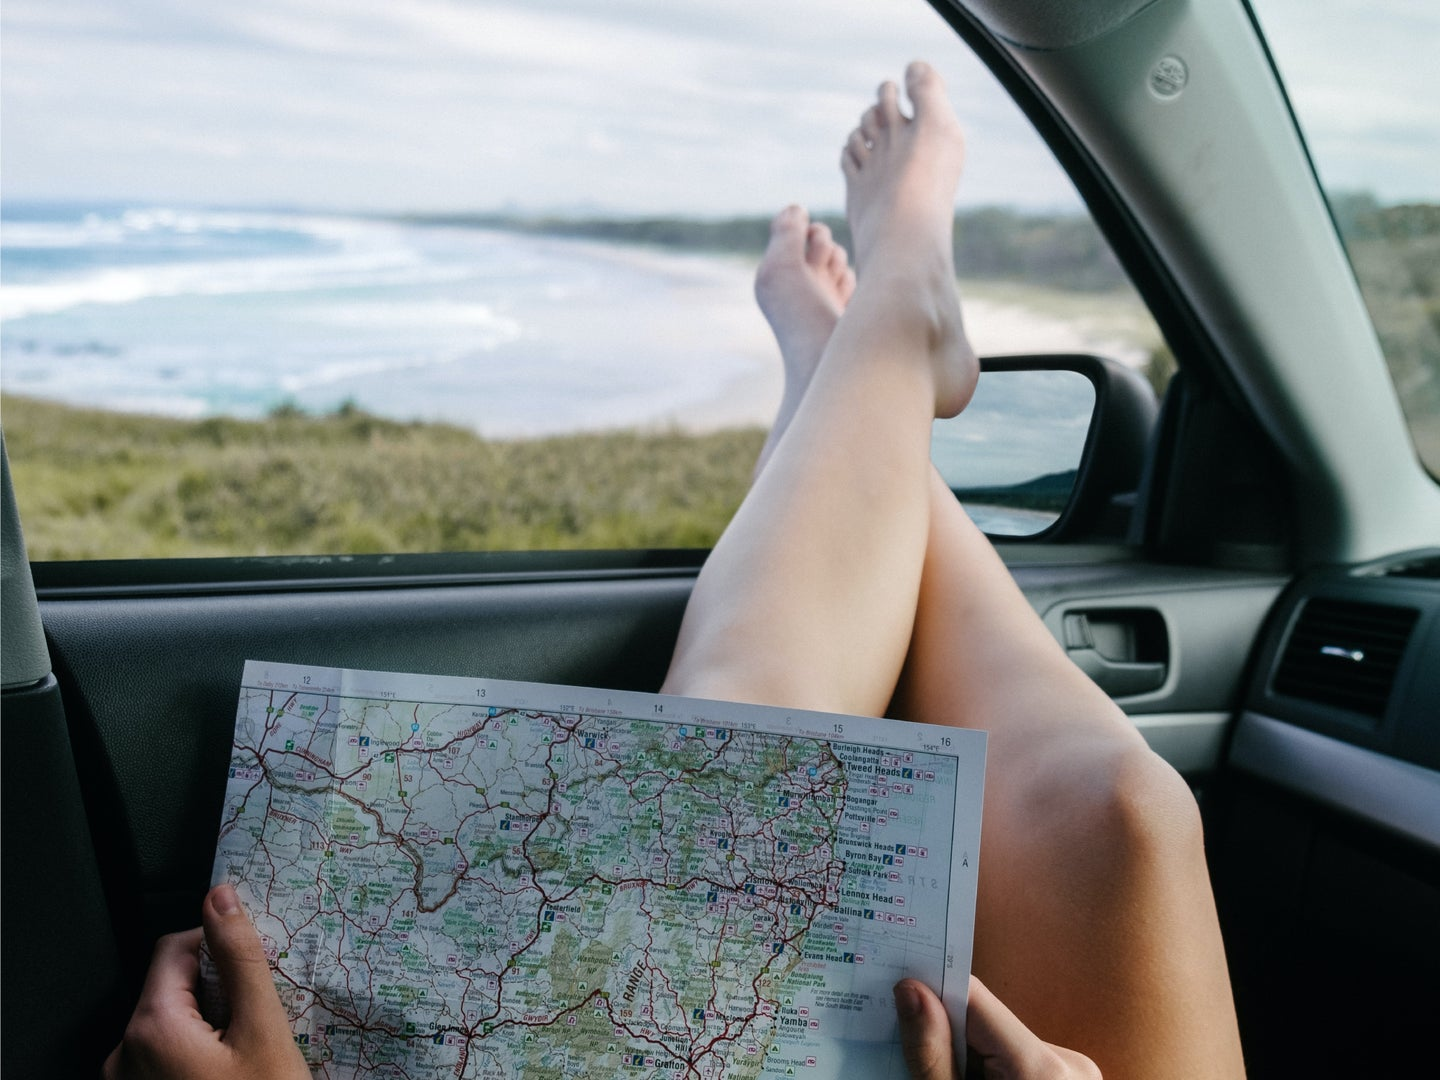 A person sitting in a car with their bare feet out the open window, looking at a road map while overlooking an ocean.